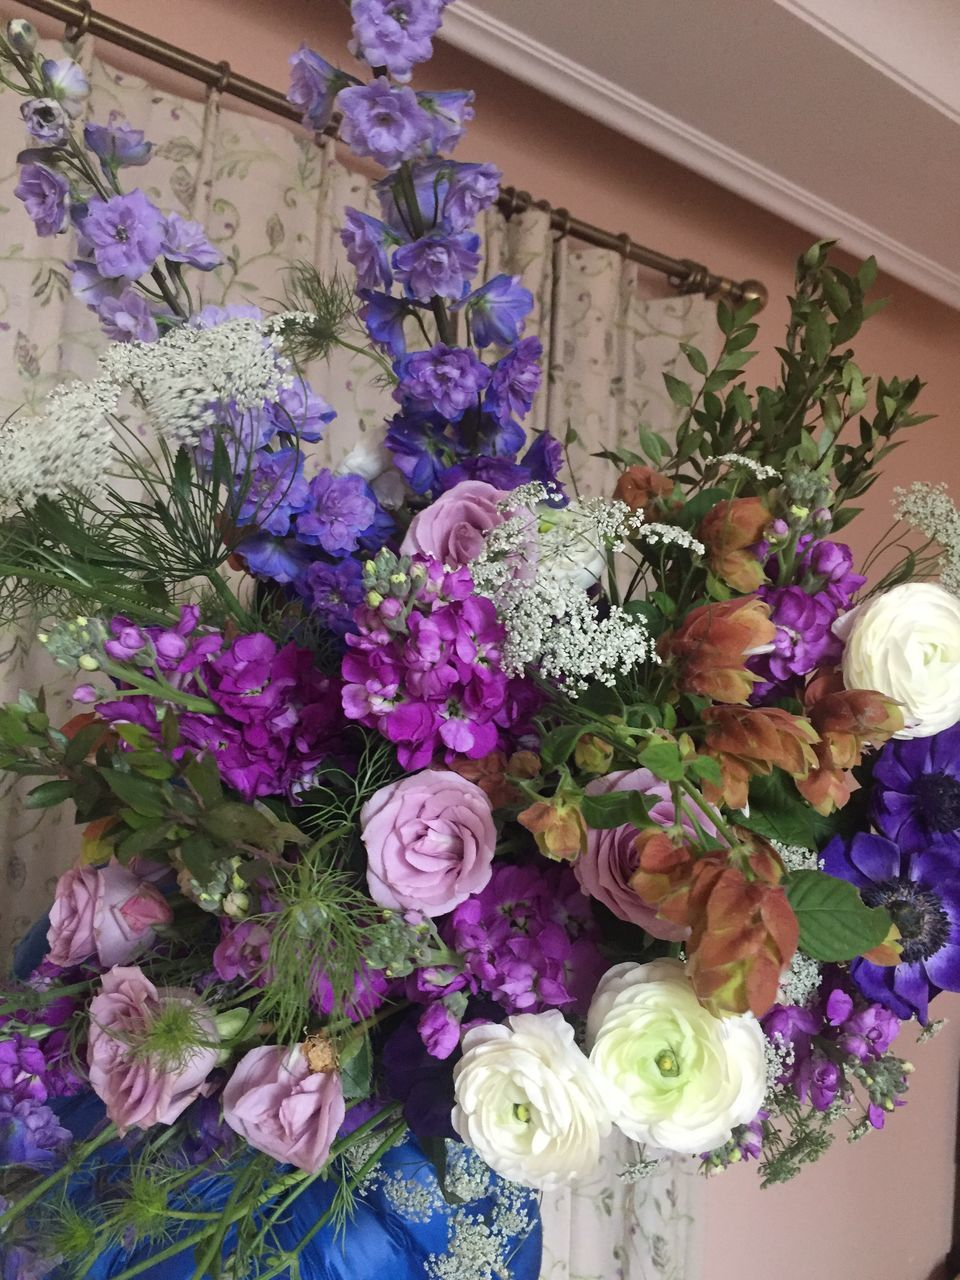 flower, bouquet, variation, fragility, indoors, flower shop, freshness, purple, beauty in nature, choice, retail, no people, multi colored, nature, leaf, day, flower head, close-up, florist